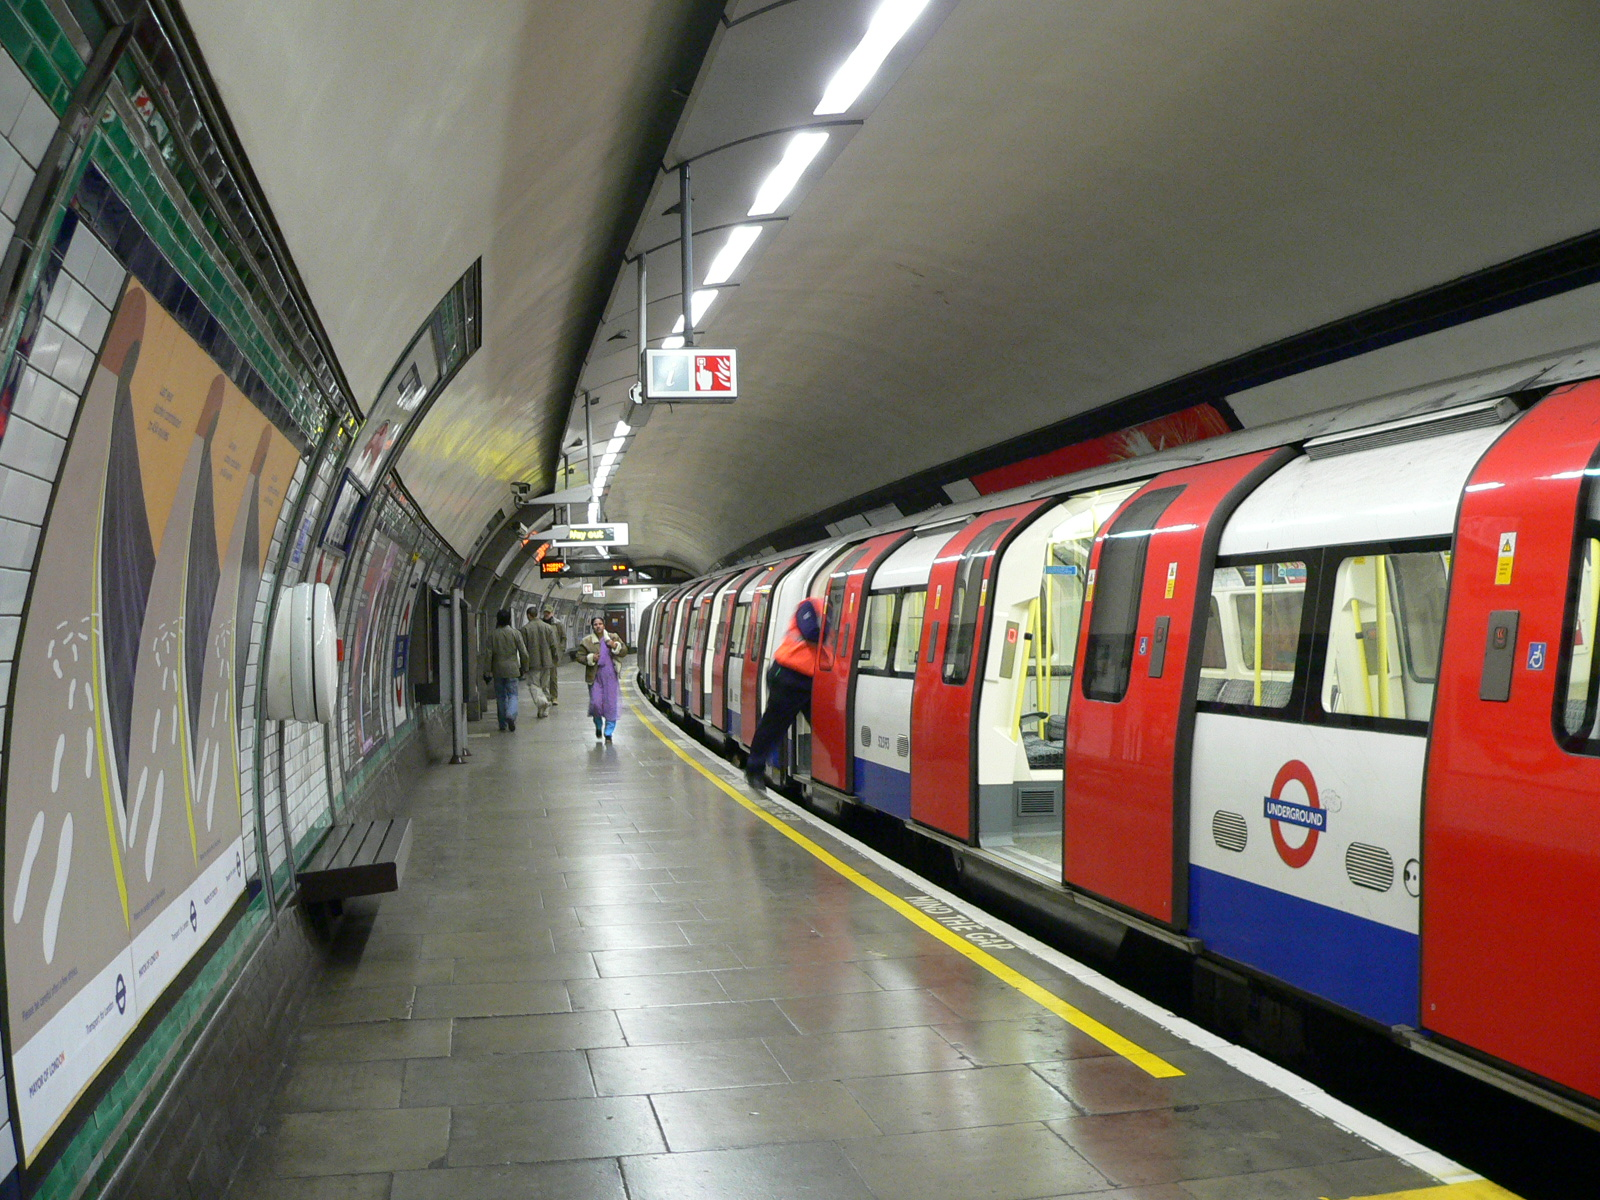 The london underground nick riley my perspective my life of riley - Afbeelding in ...